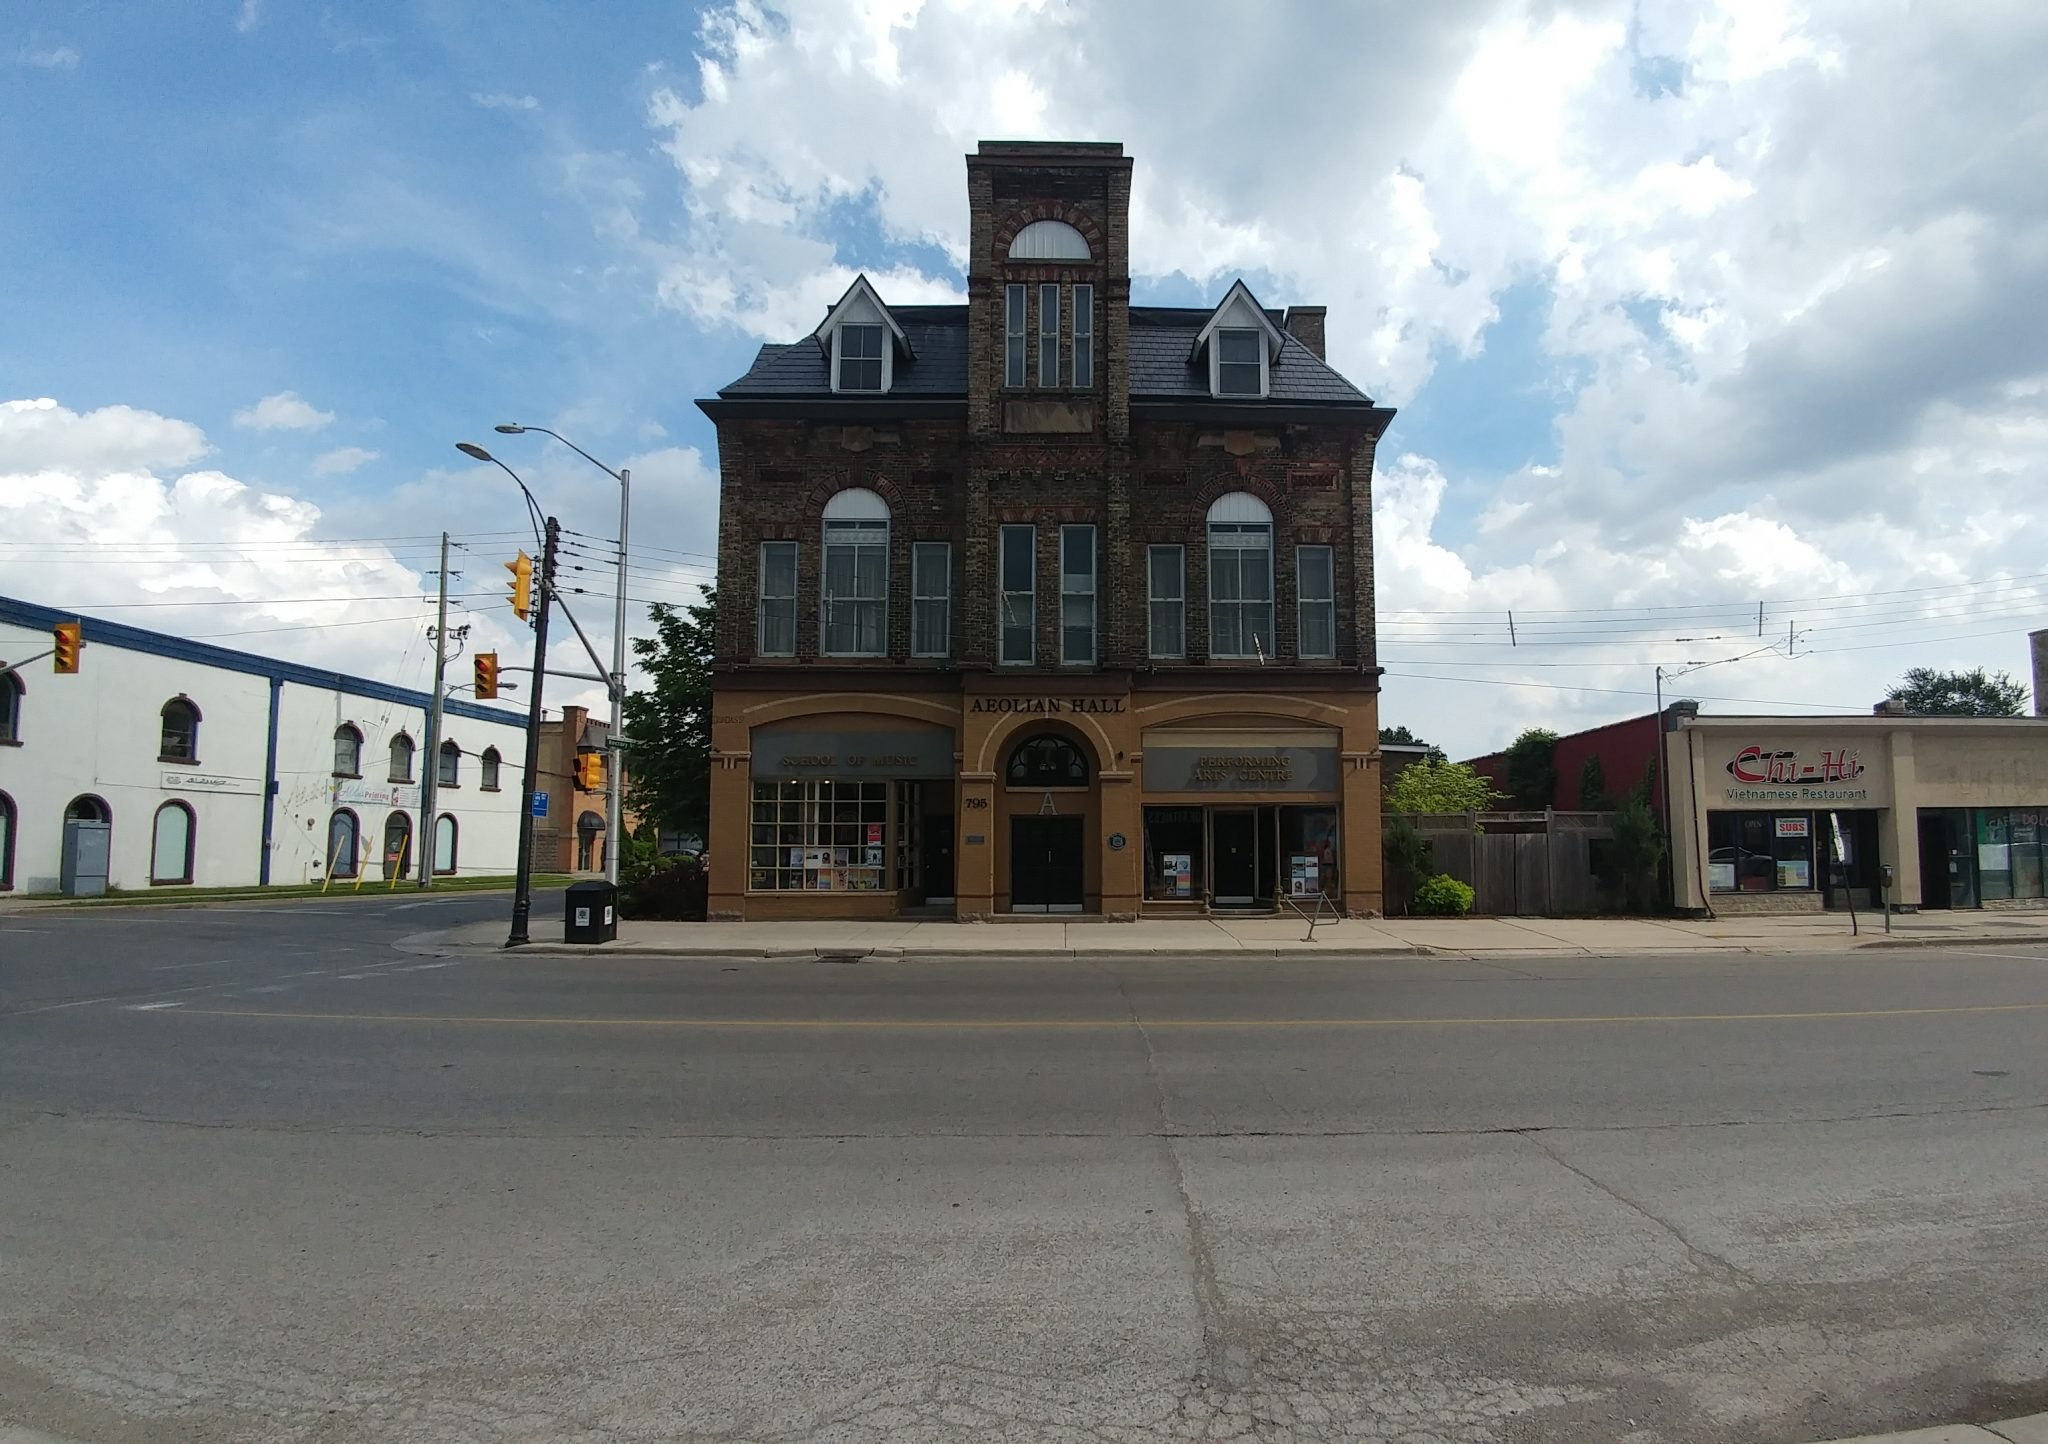 A photo facing South of the Aeolian Hall, which plays host to the Local Folk 3 concert on June 10, 2017.